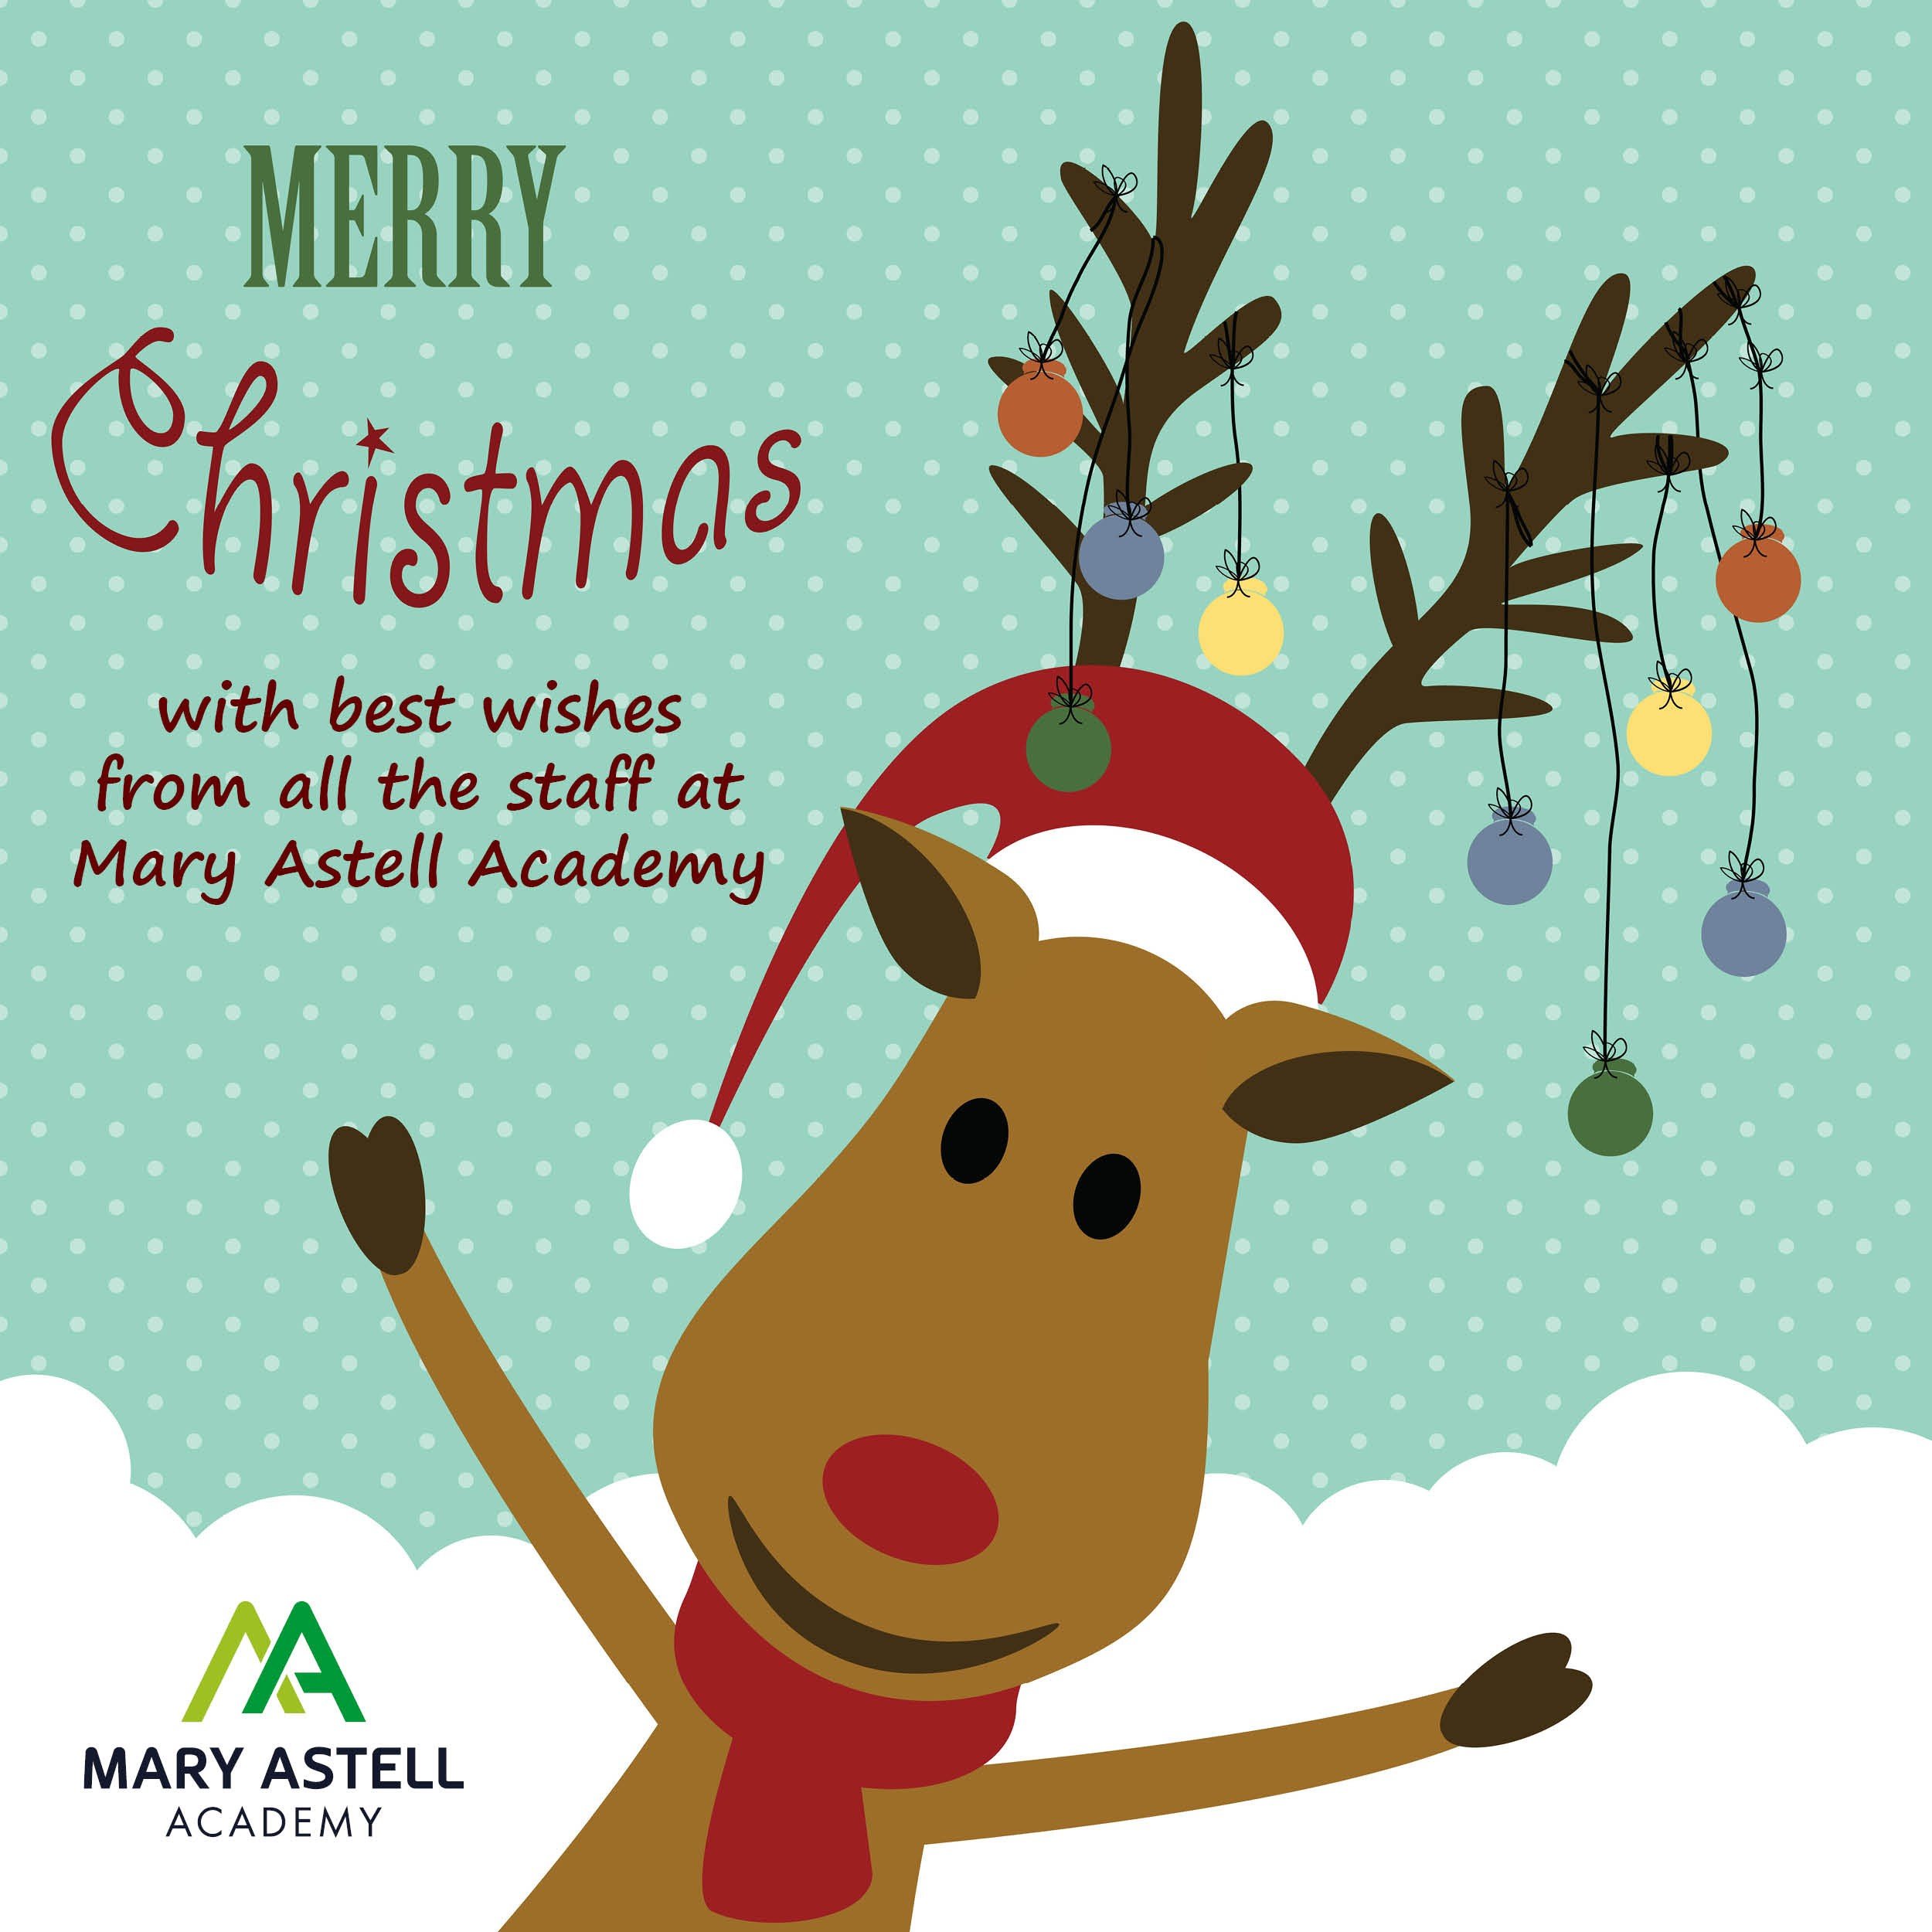 Merry Christmas from Mary Astell Academy!